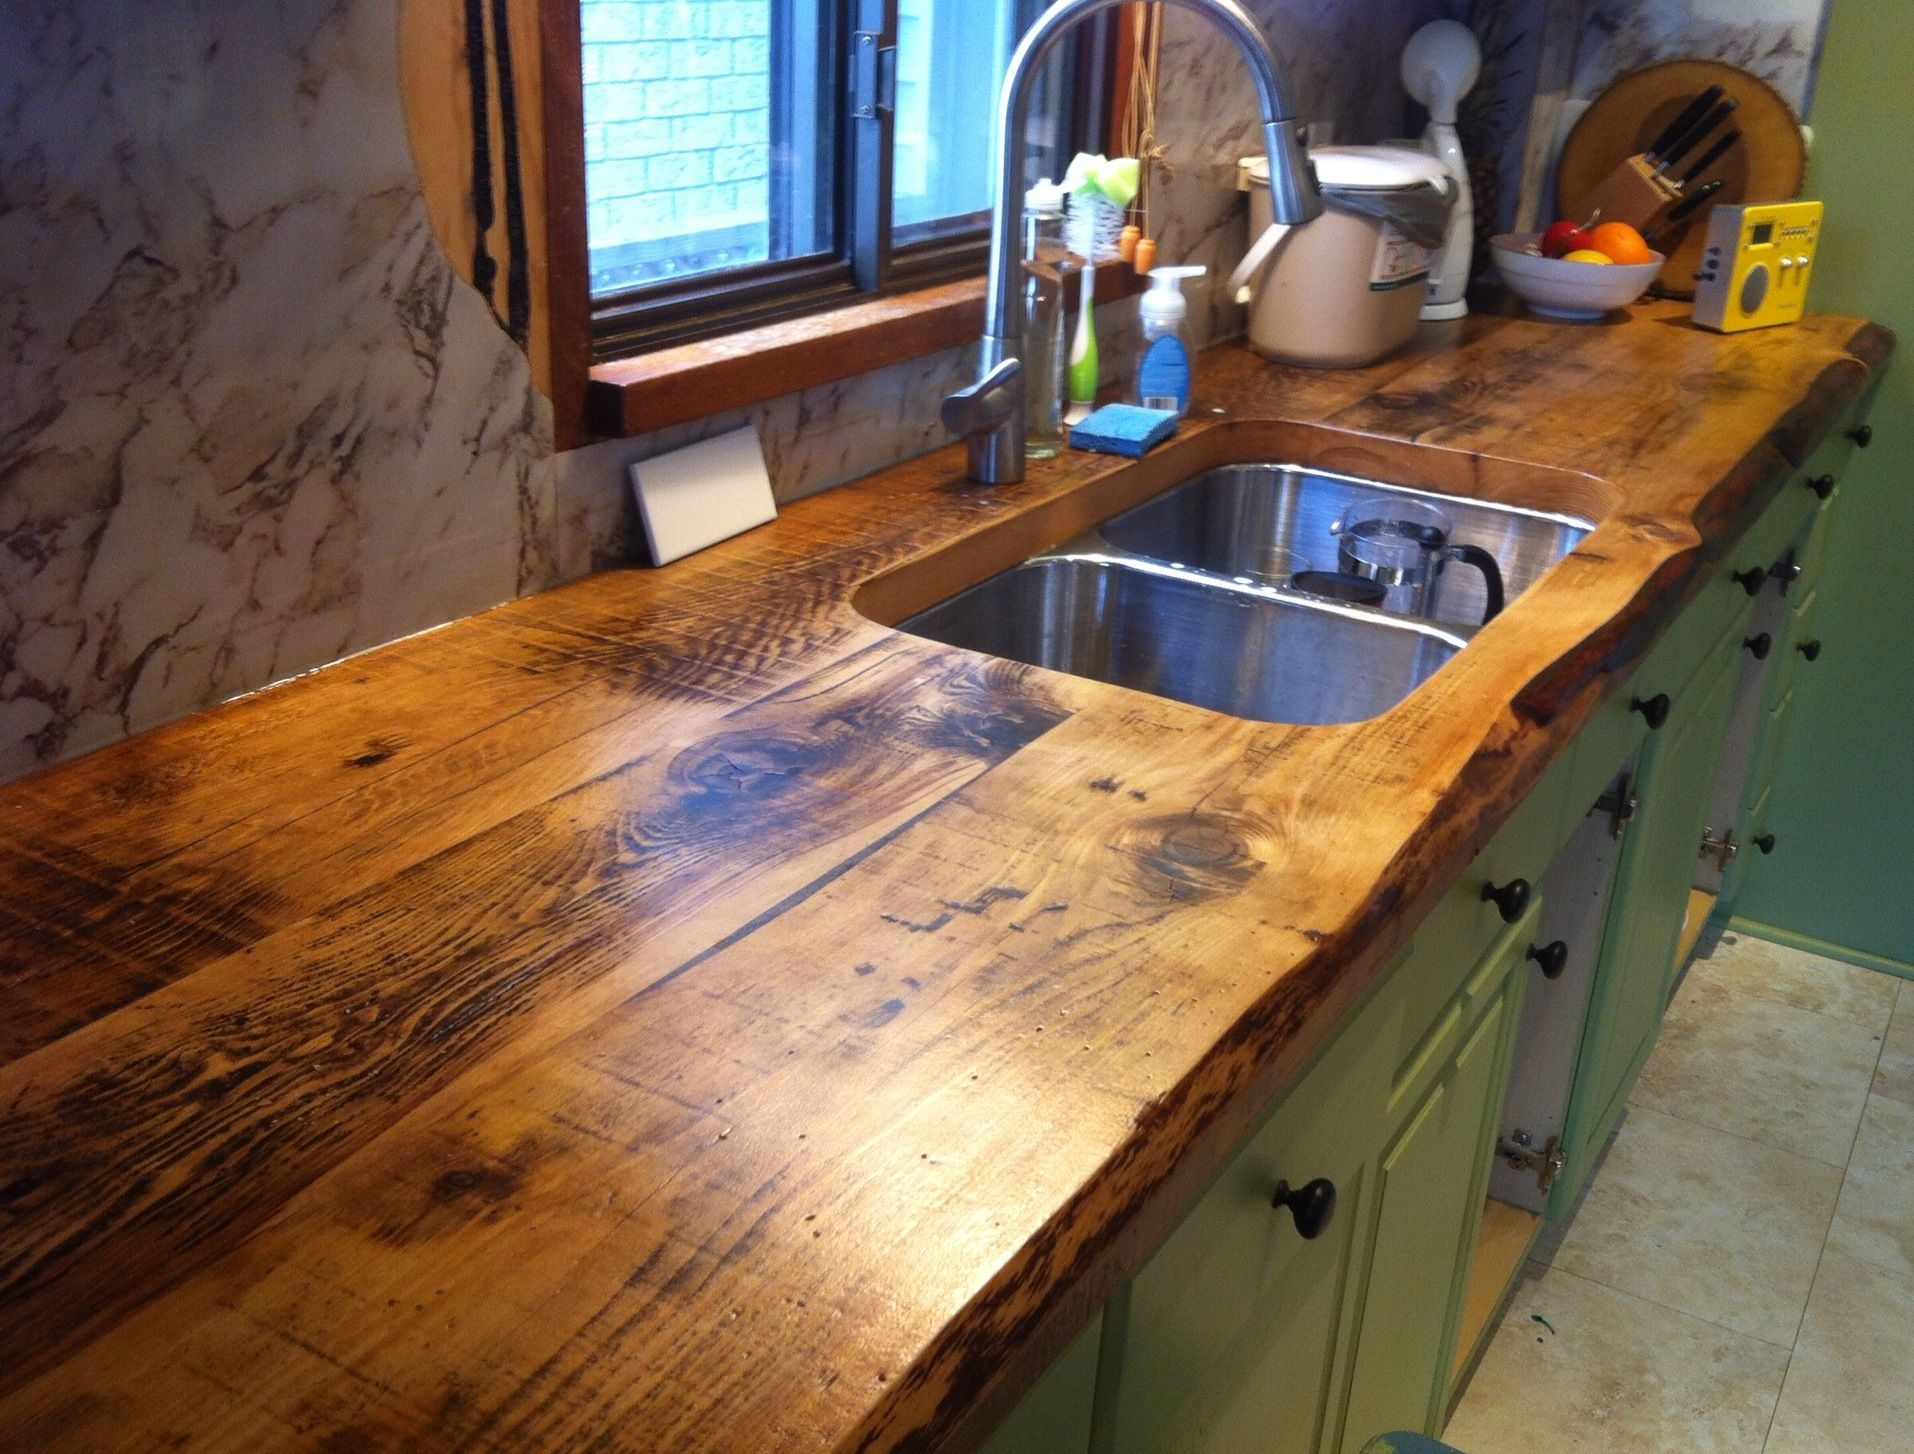 wood kitchen countertops awesome live edge kitchen counter built with 2 inch thick hemlock floor boards by barnboardstore